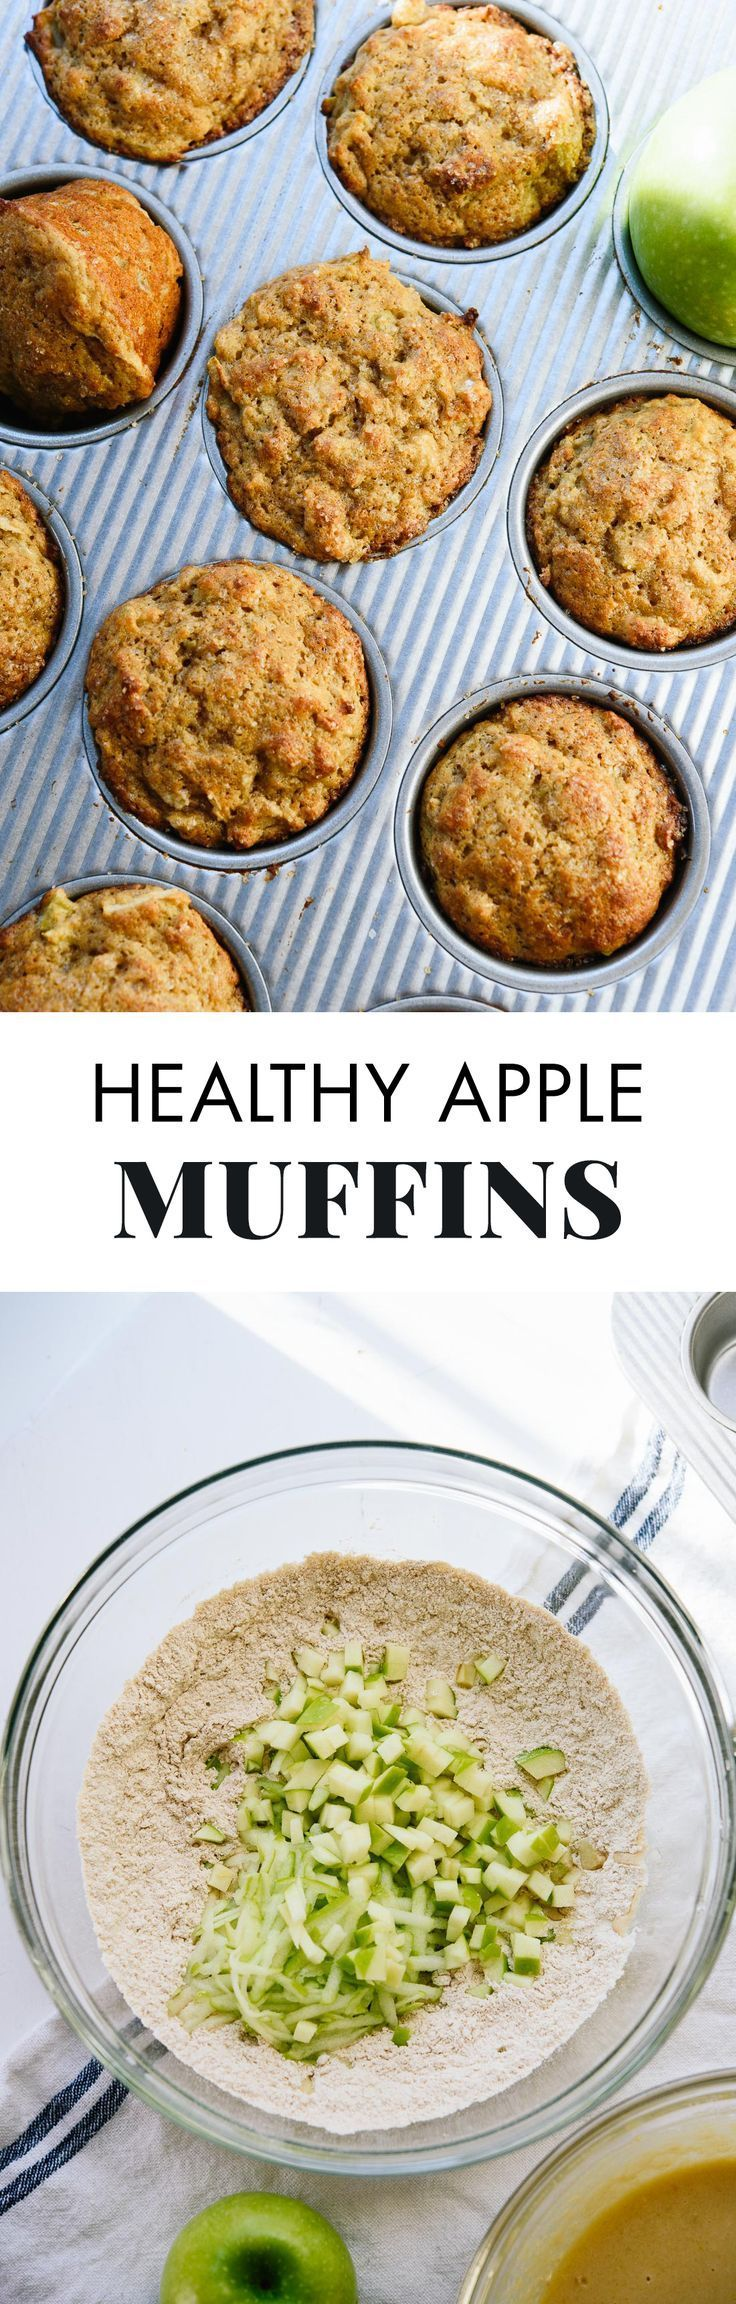 Healthy Apple Muffins Recipe - Cookie and Kate